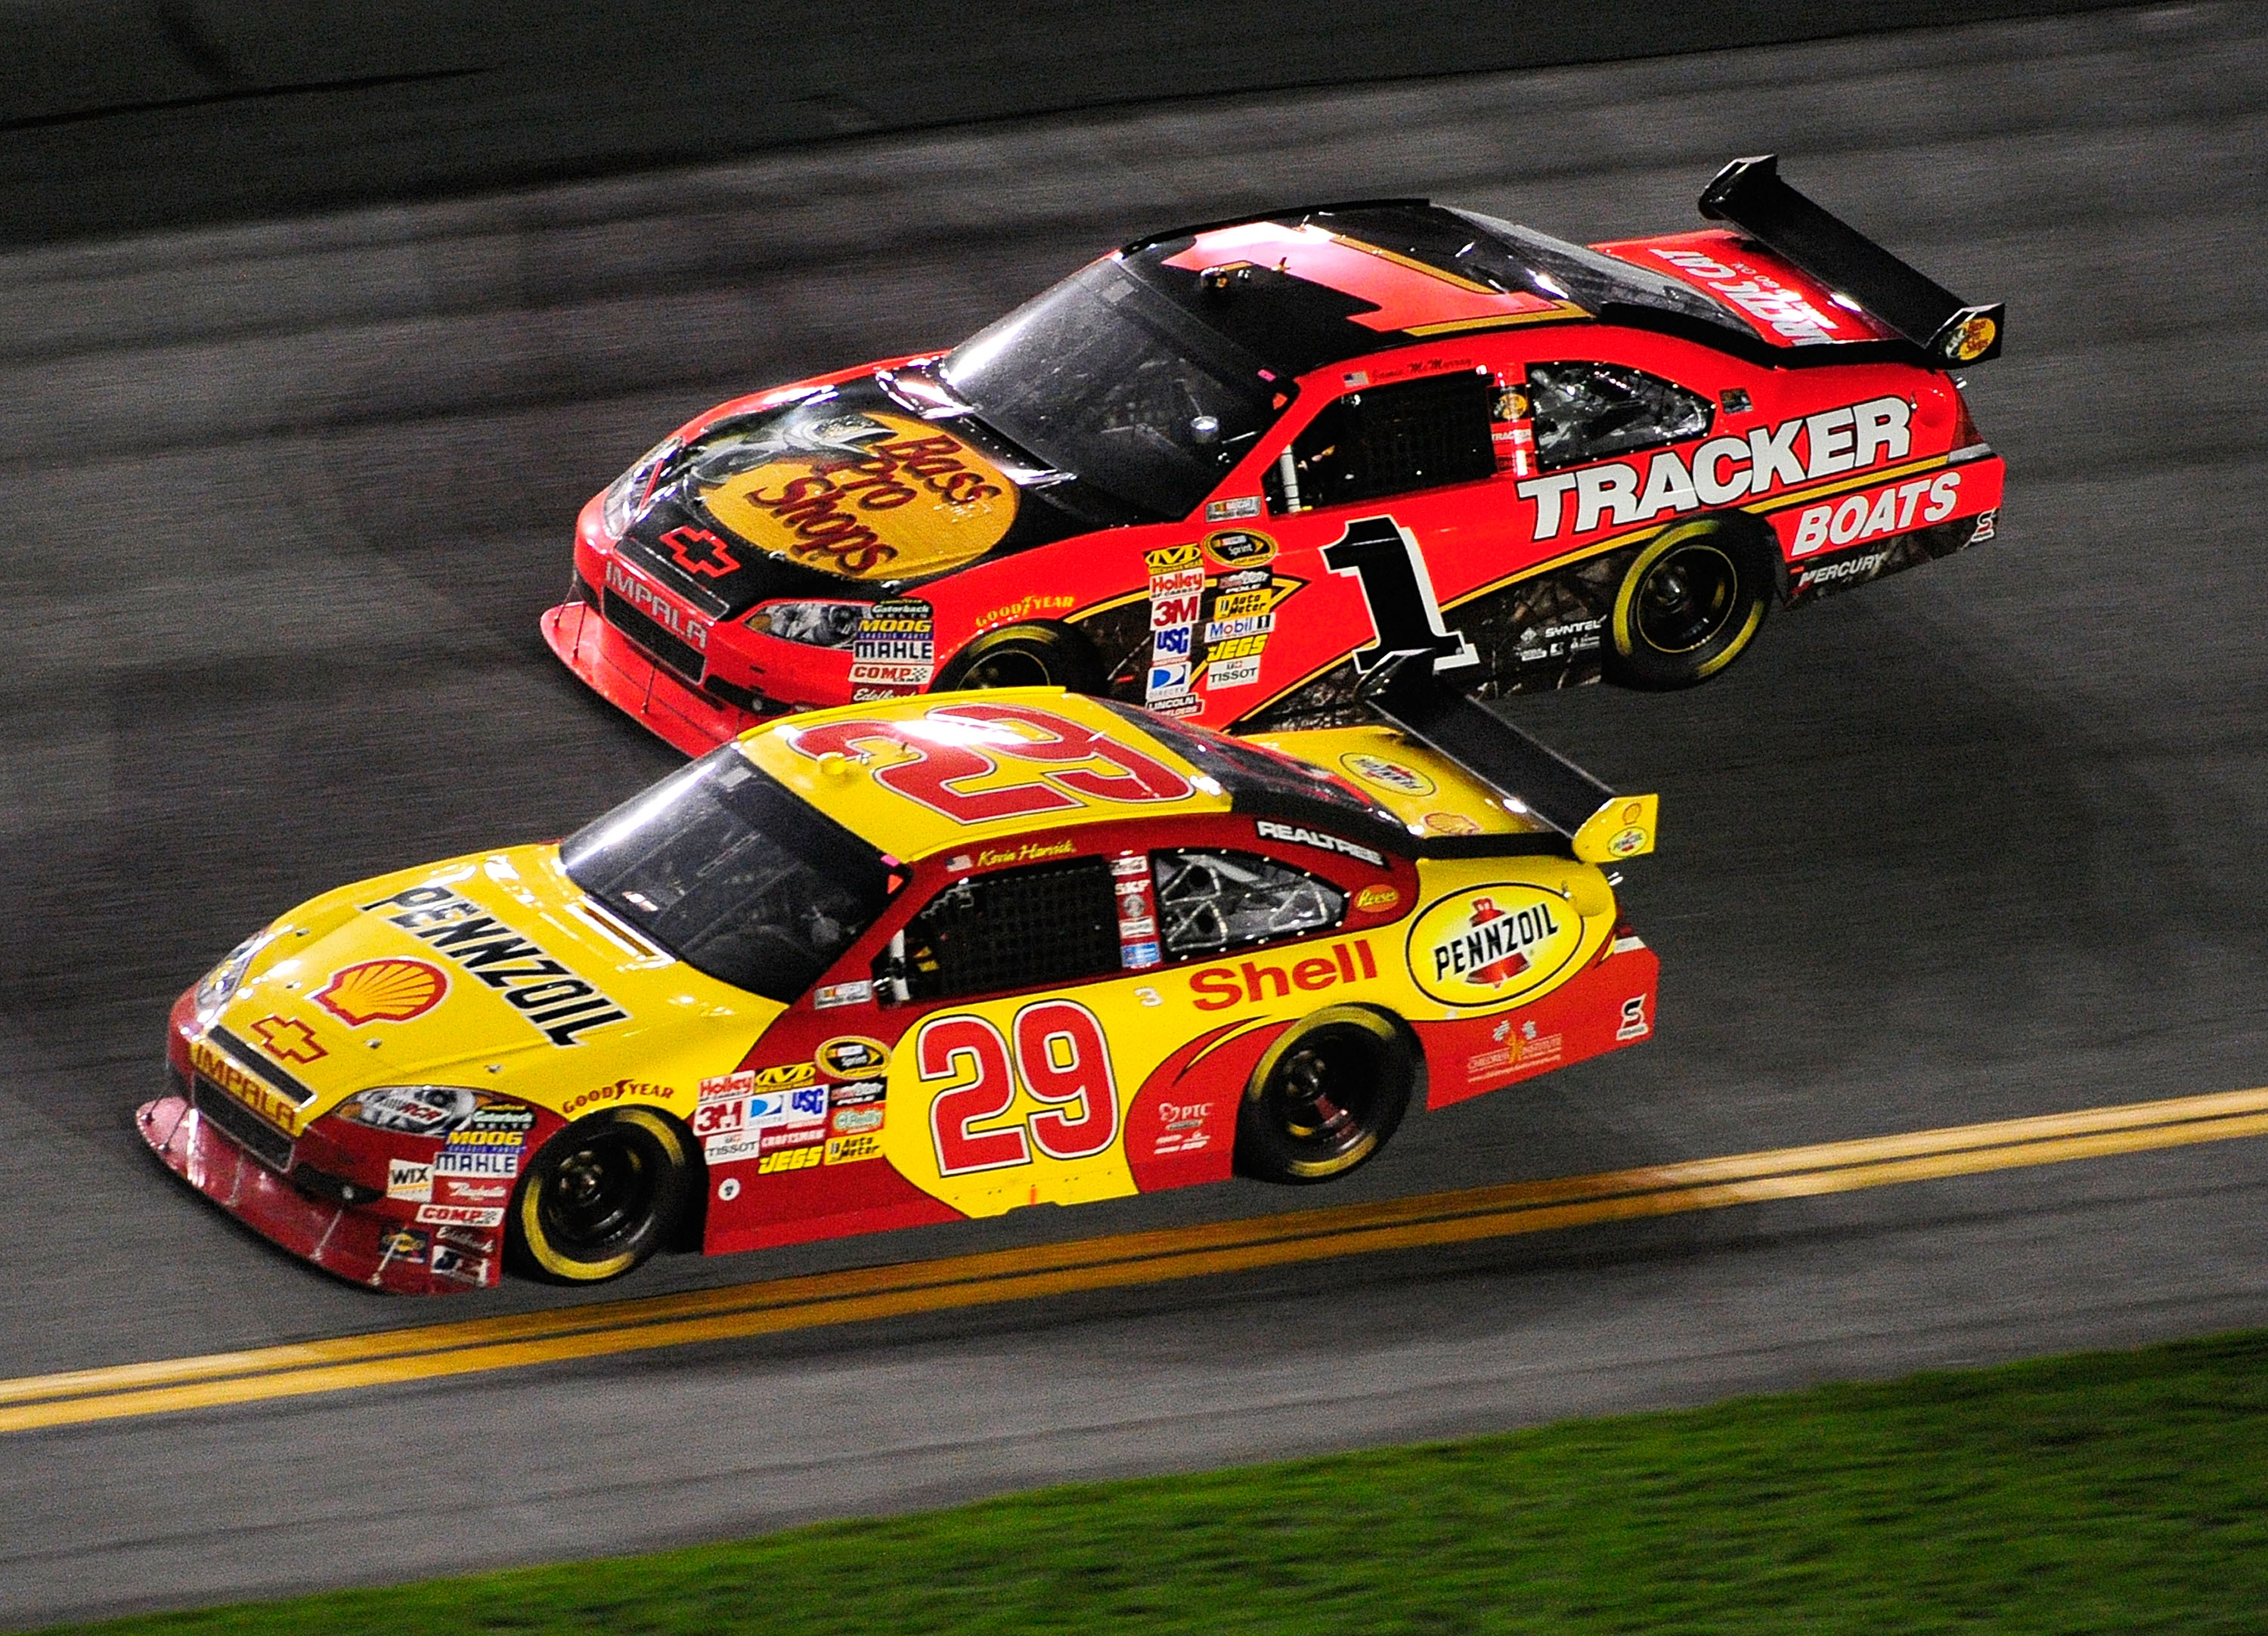 DAYTONA BEACH, FL - FEBRUARY 06:  Kevin Harvick, driver of the #29 Shell/Pennzoil Chevrolet, races Jamie McMurray, driver of the #Bass Pro Shops/Tracker Chevrolet, during the Budweiser Shootout at Daytona International Speedway on February 6, 2010 in Dayt